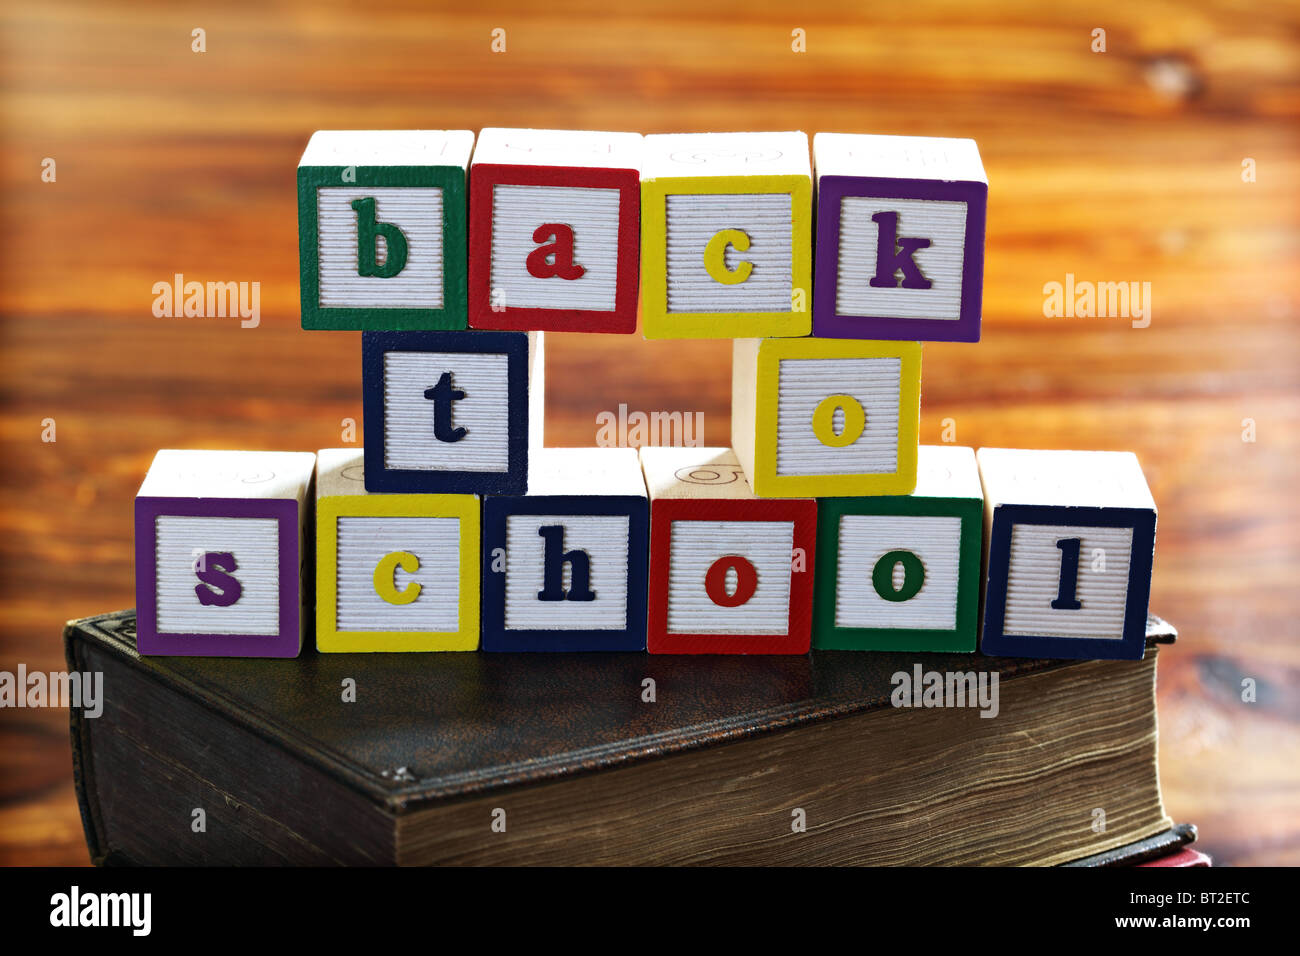 Back to school sign - Stock Image